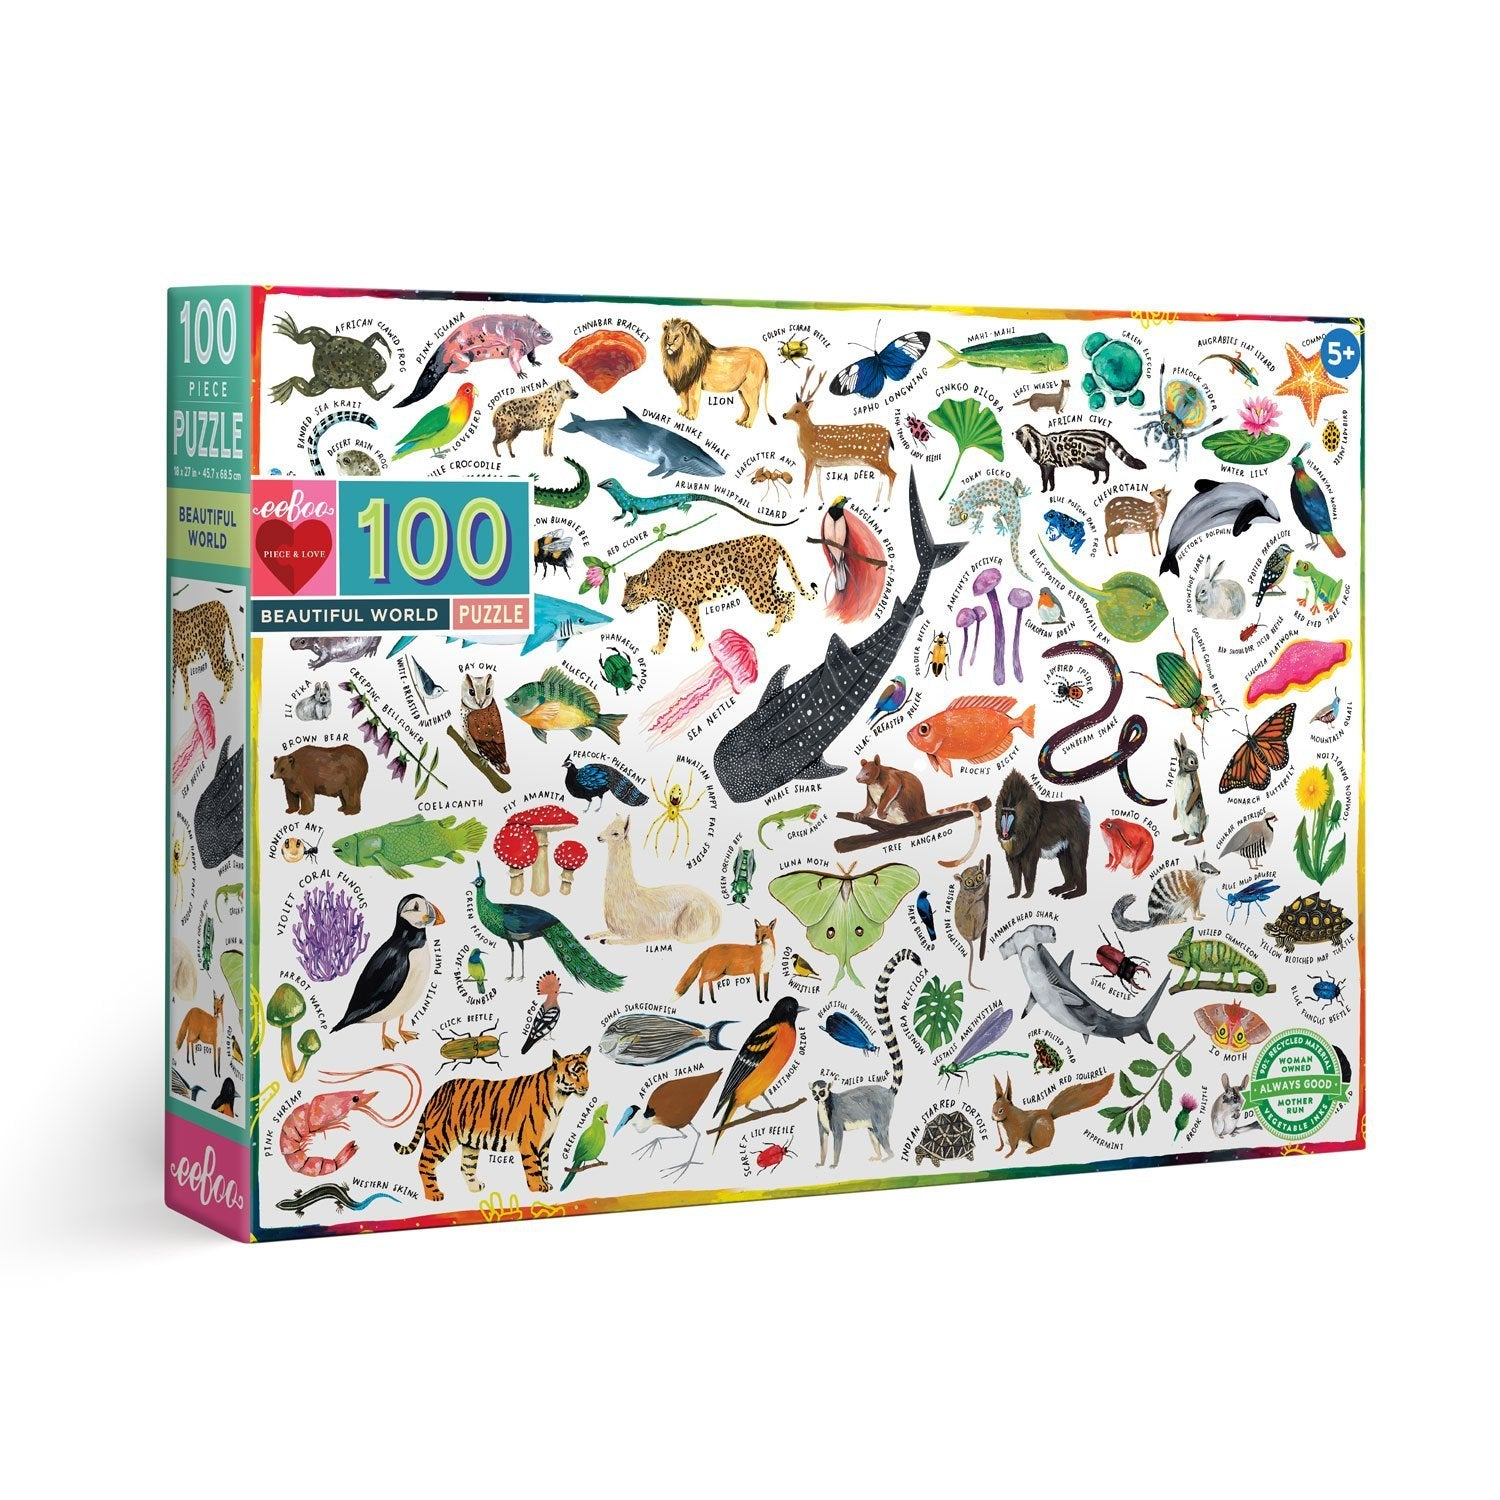 Beautiful World - 100 Piece Puzzle